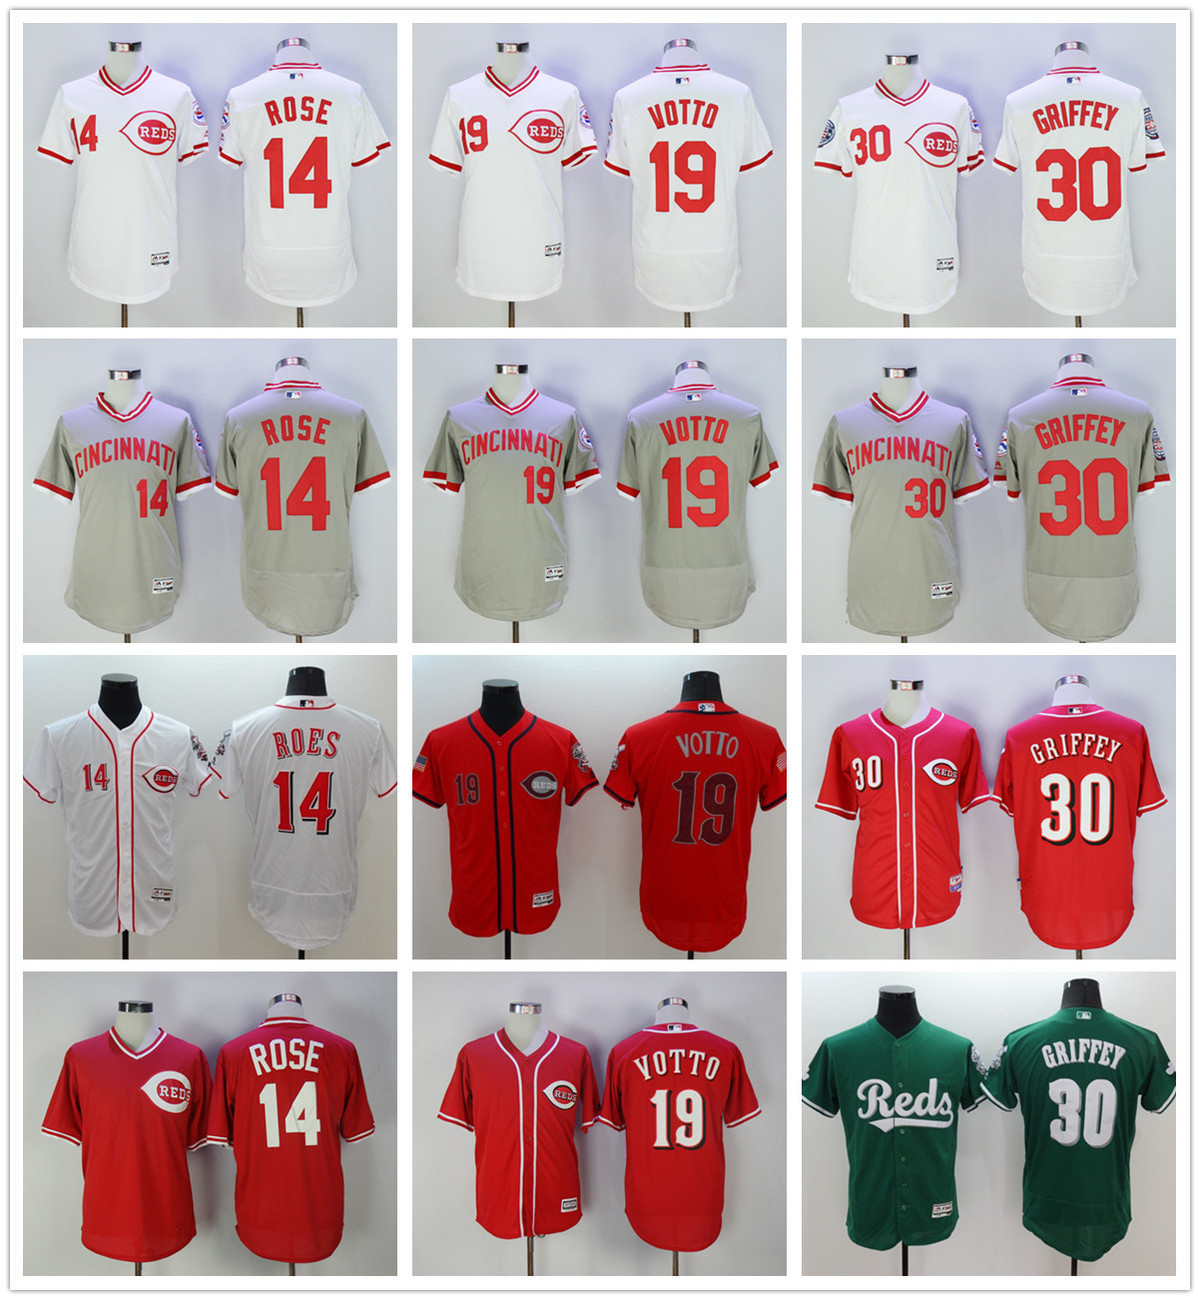 744f0ae80 Buy cincinnati reds jersey votto and get free shipping on AliExpress.com